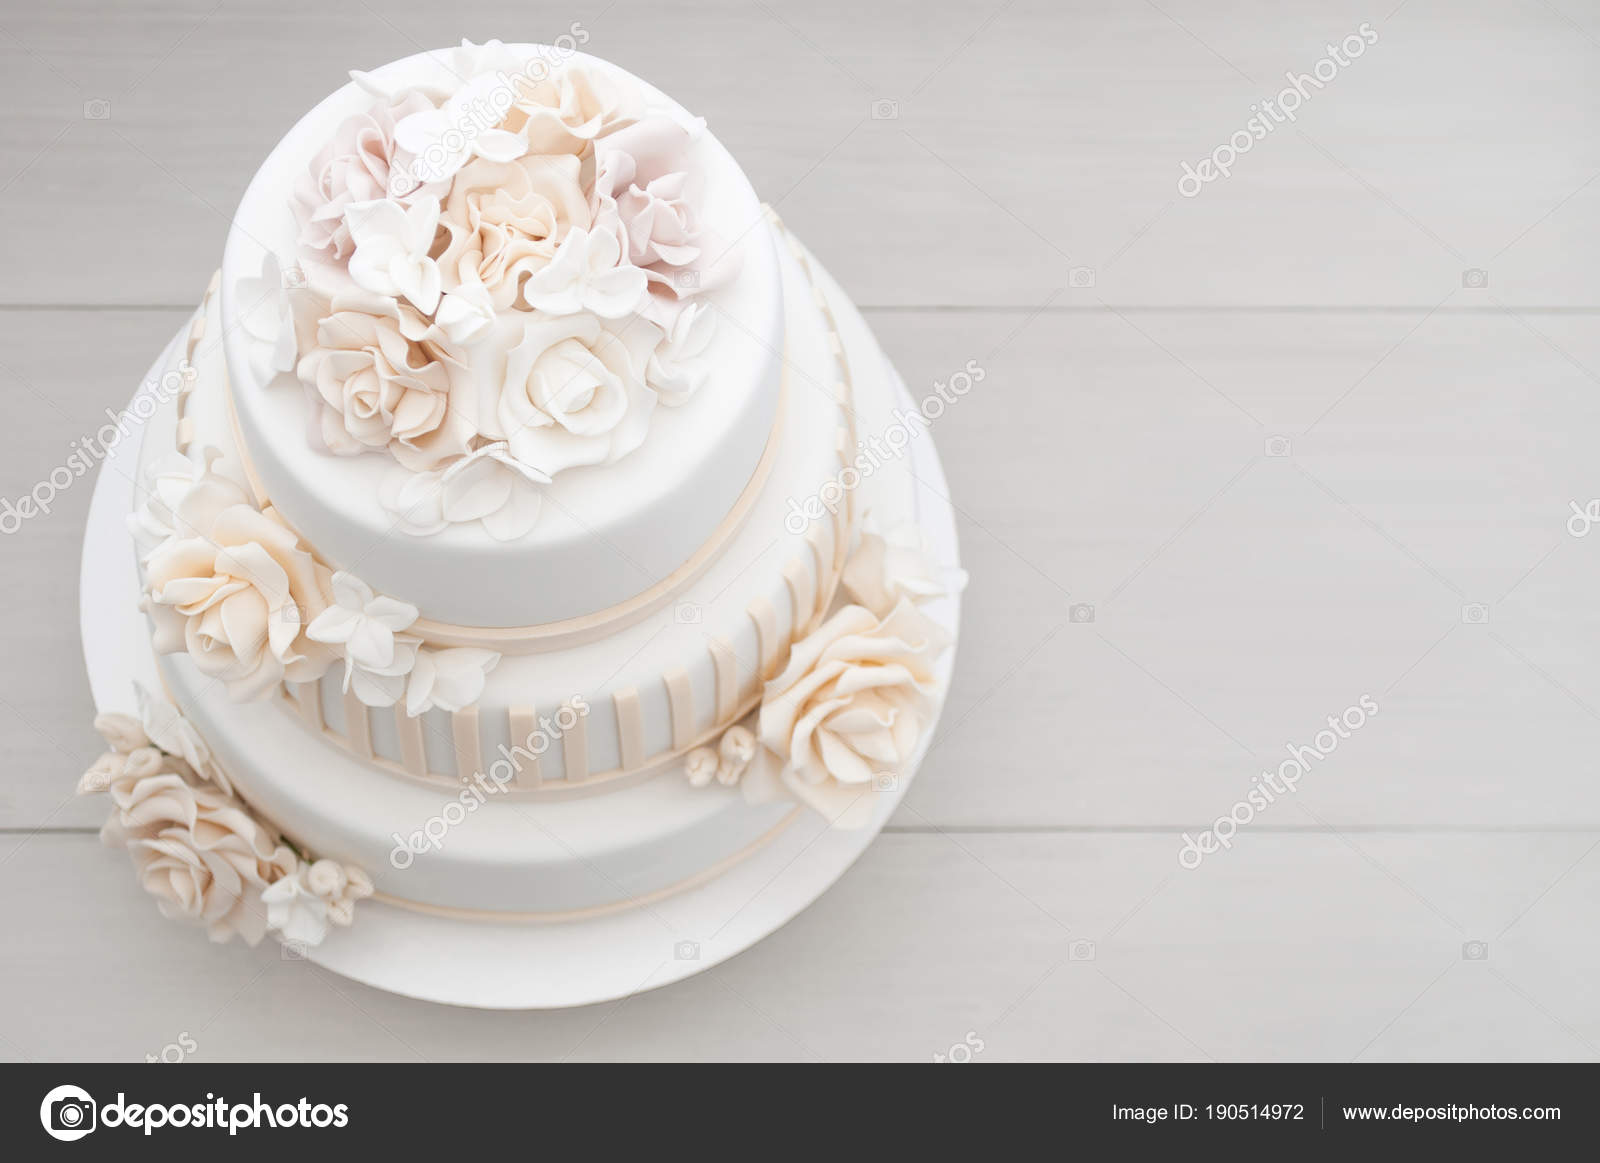 Three Tiered White Wedding Cake Decorated Flowers Mastic White